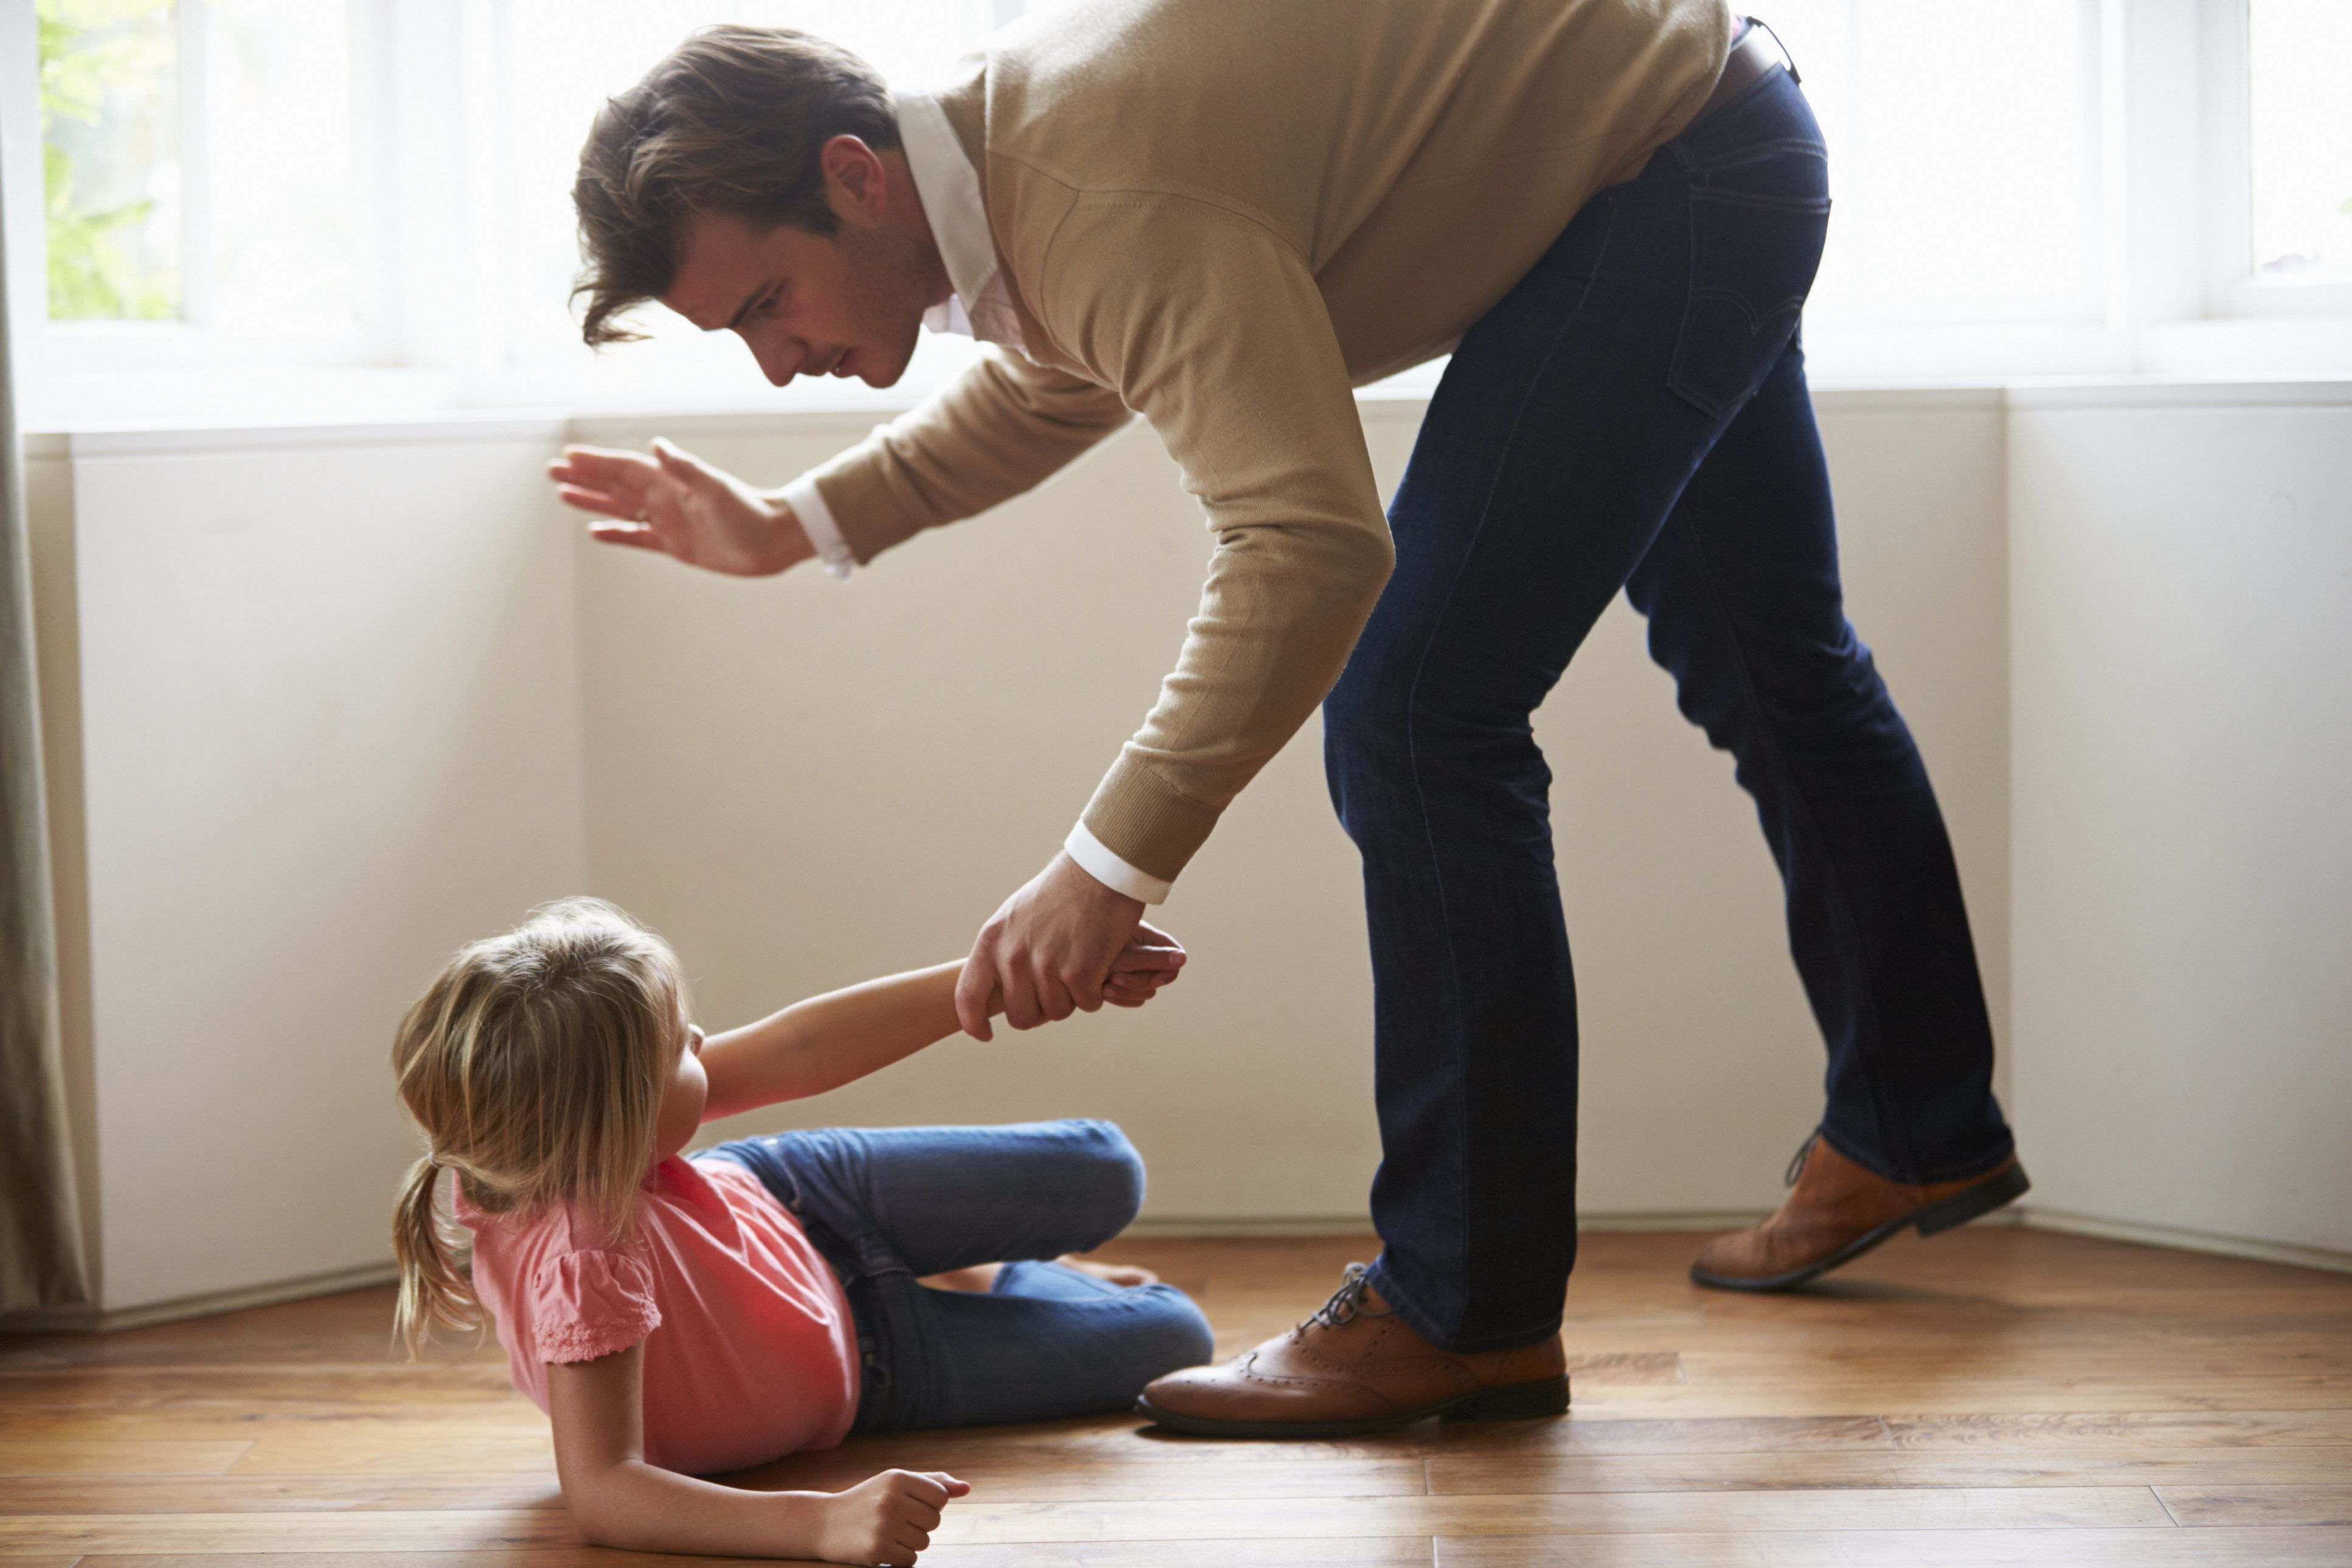 Should Smacking Be Banned In The Home? New Calls For Government To